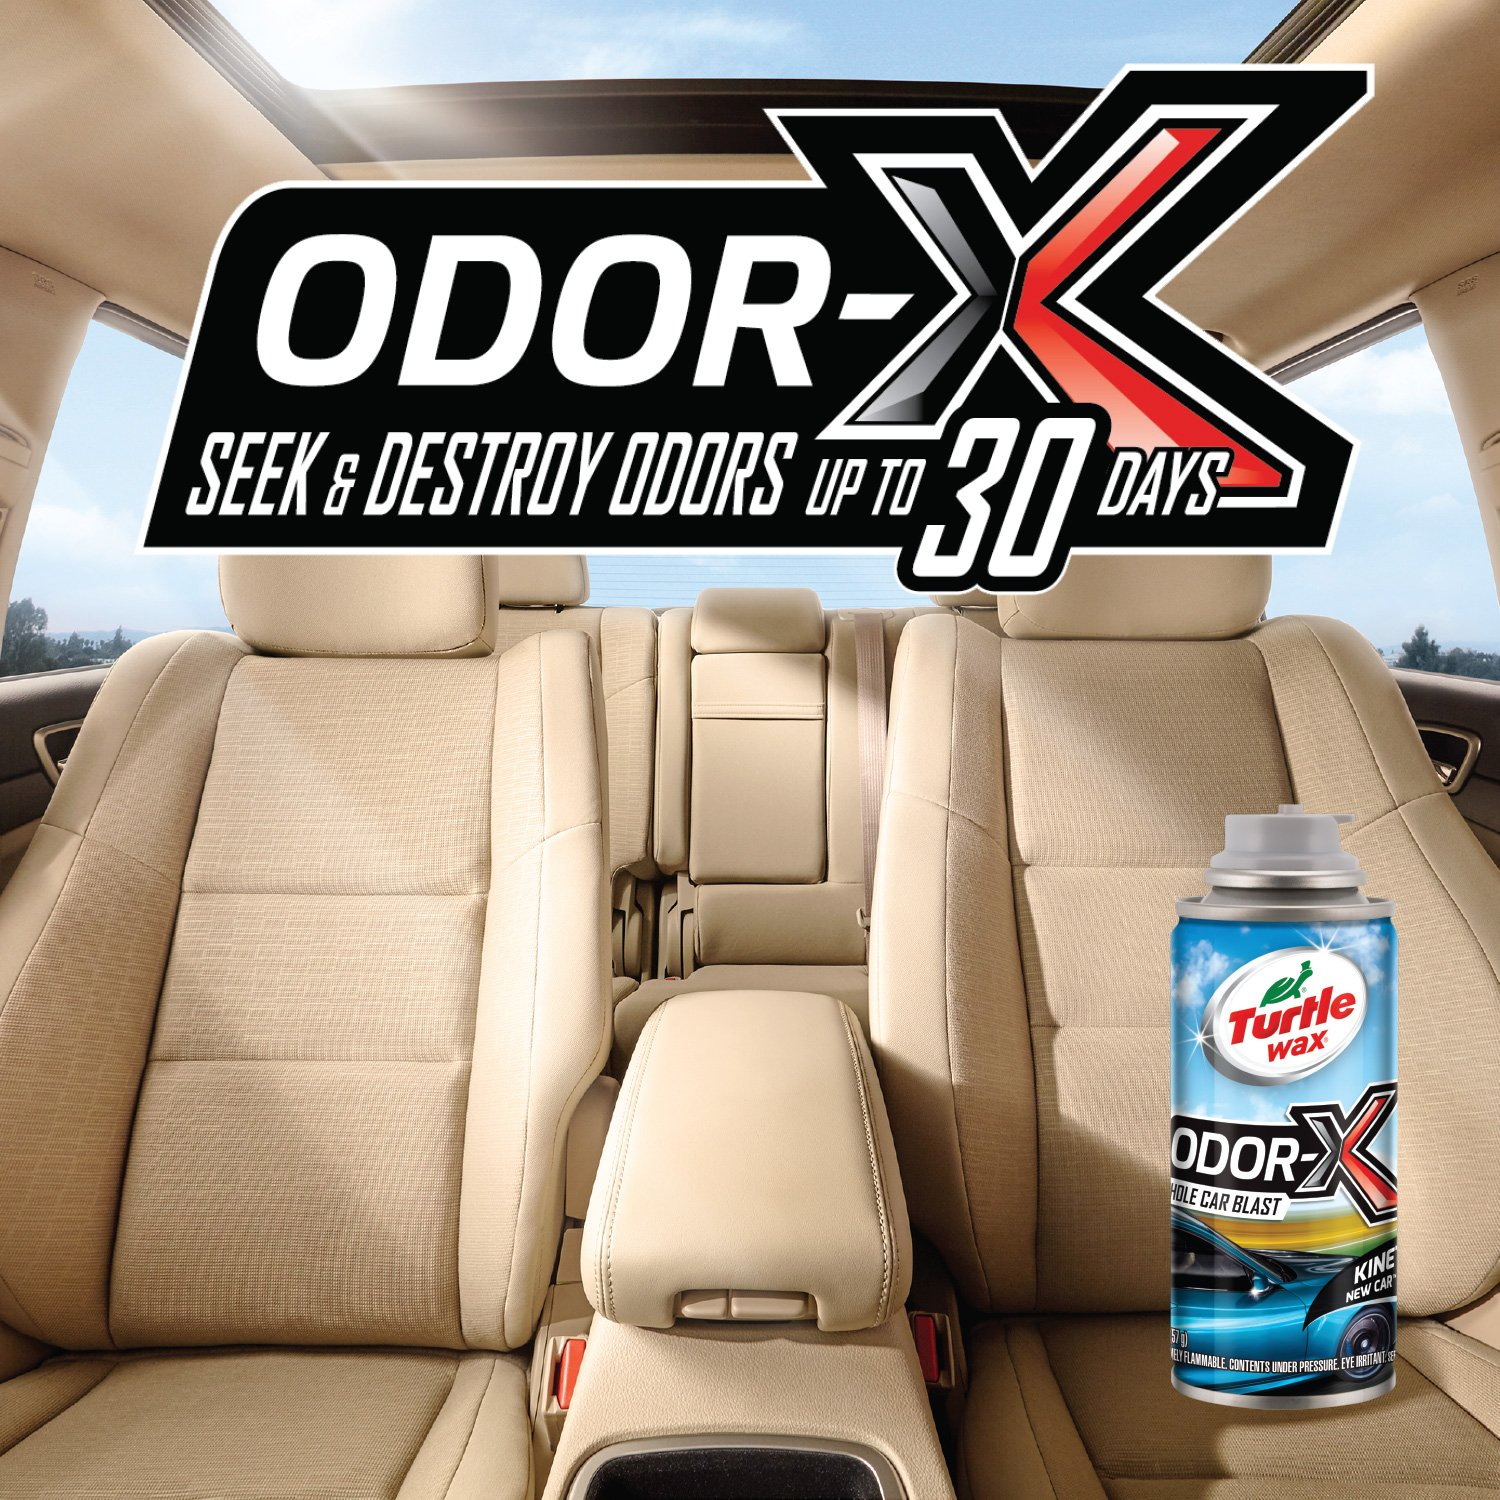 Turtle Wax 50819 Power Out! Odor-X Kinetic Whole Car Blast, 2-Pack by Turtle Wax (Image #4)